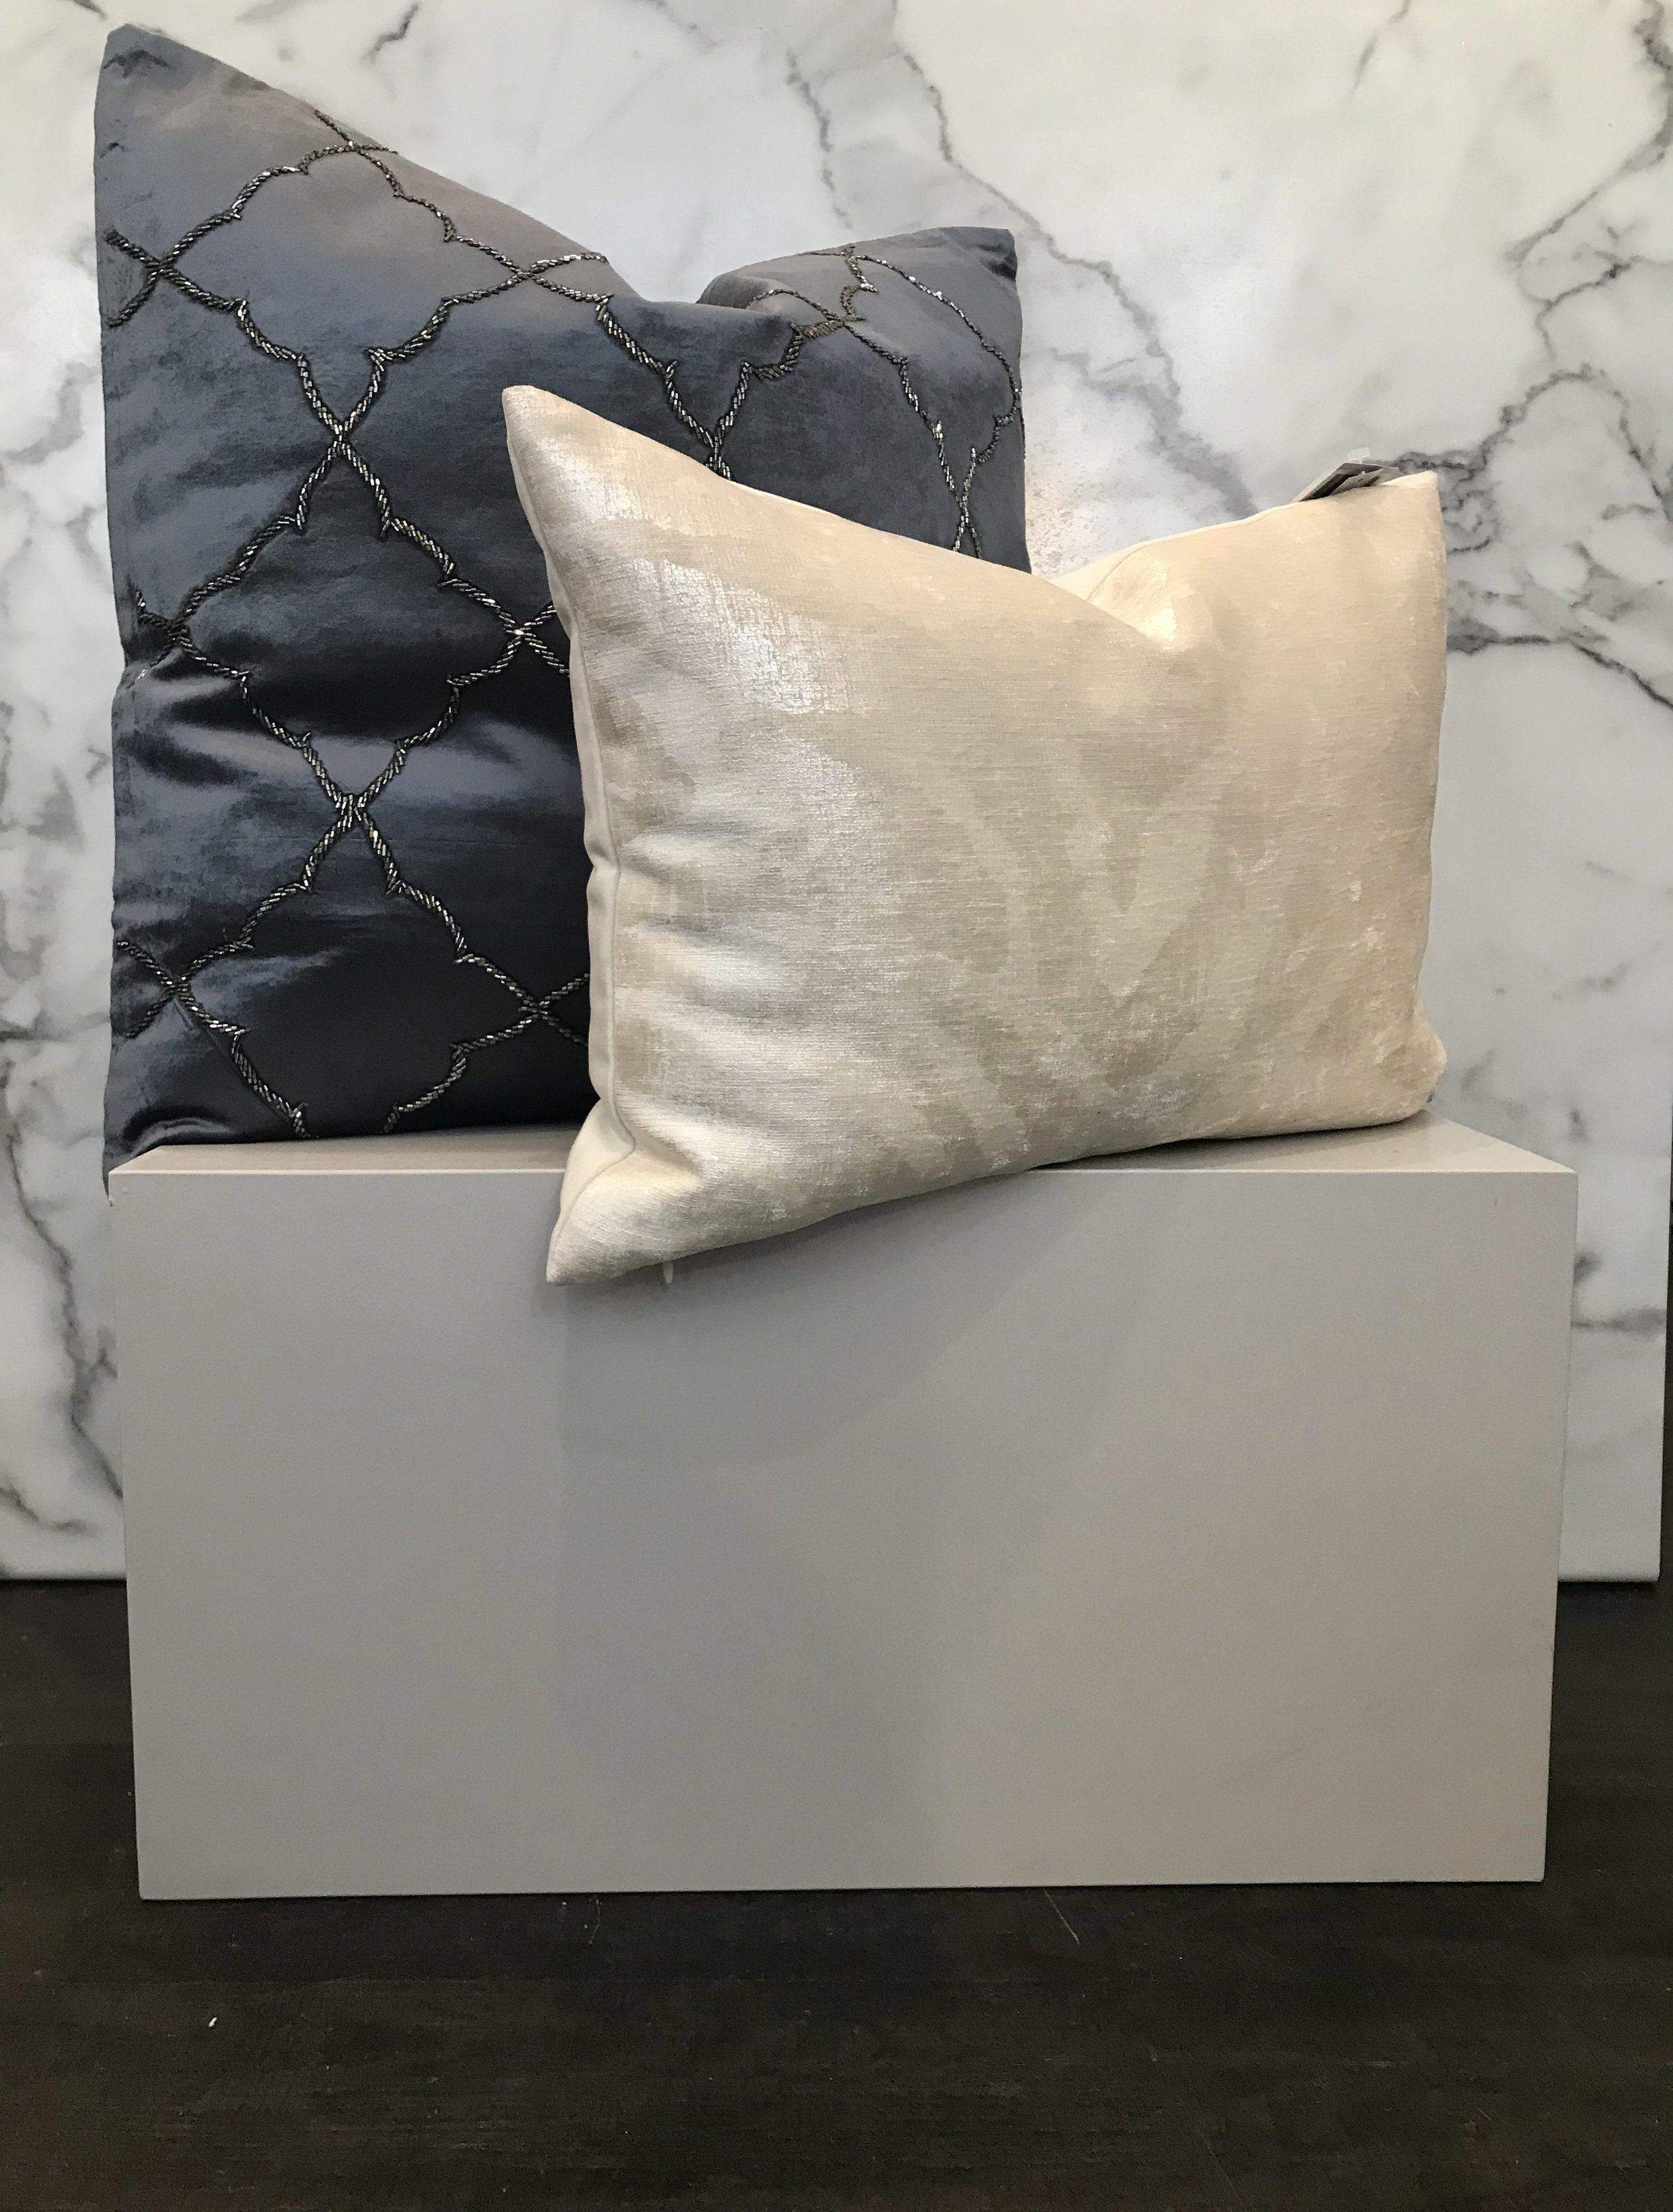 - Every room needs a little shimmer and shine. This beaded quatrefoil pillow is a subtle bit of sparkle, but when light hits the beading it will create a large impact. This metallic printed pillow is the perfect pair.